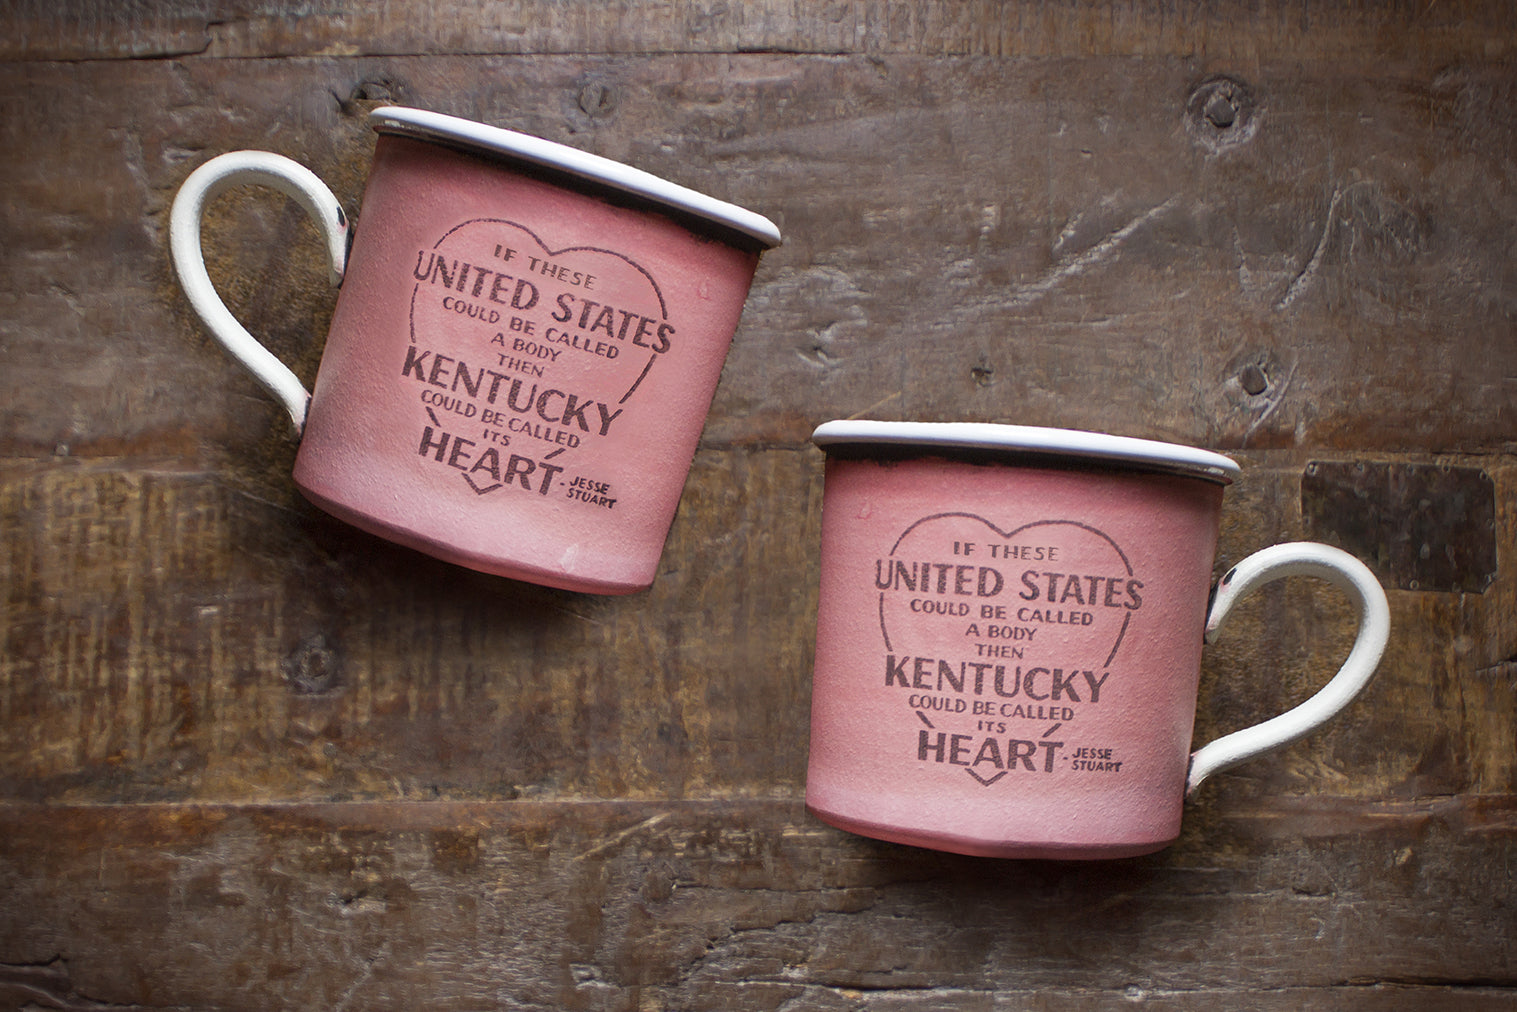 KY Heart Mugs By David Kring